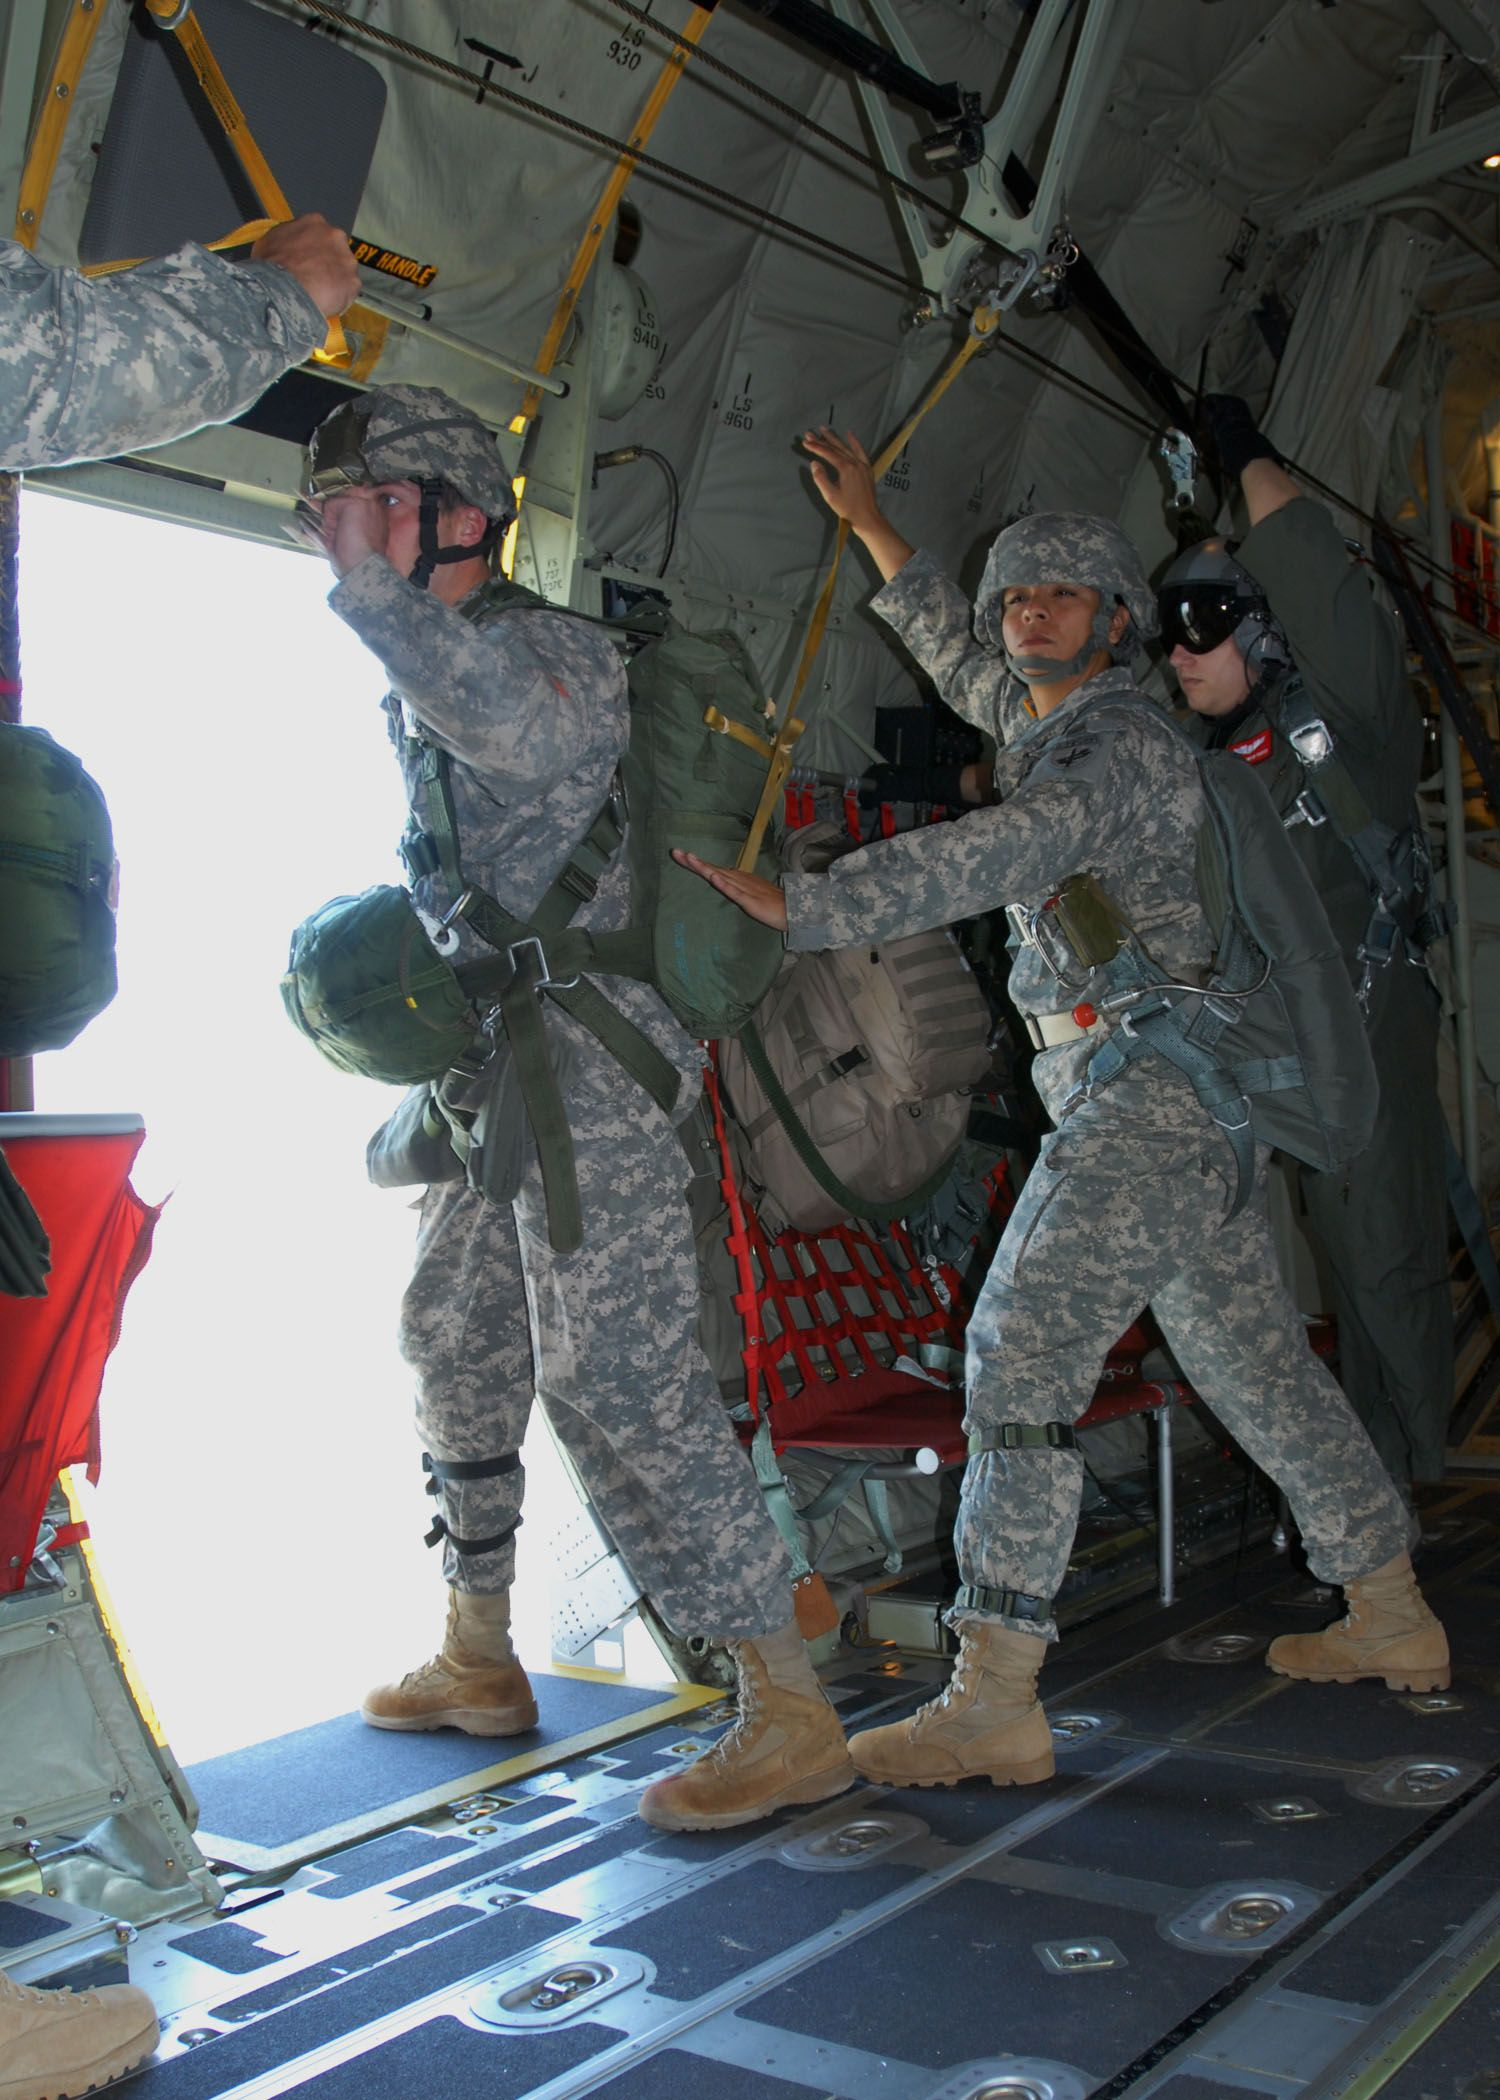 Jumper In The Door Jumpmaster S Countdown Is Going Way Too Fast Airborne Ranger Us Army Rangers Army Rangers